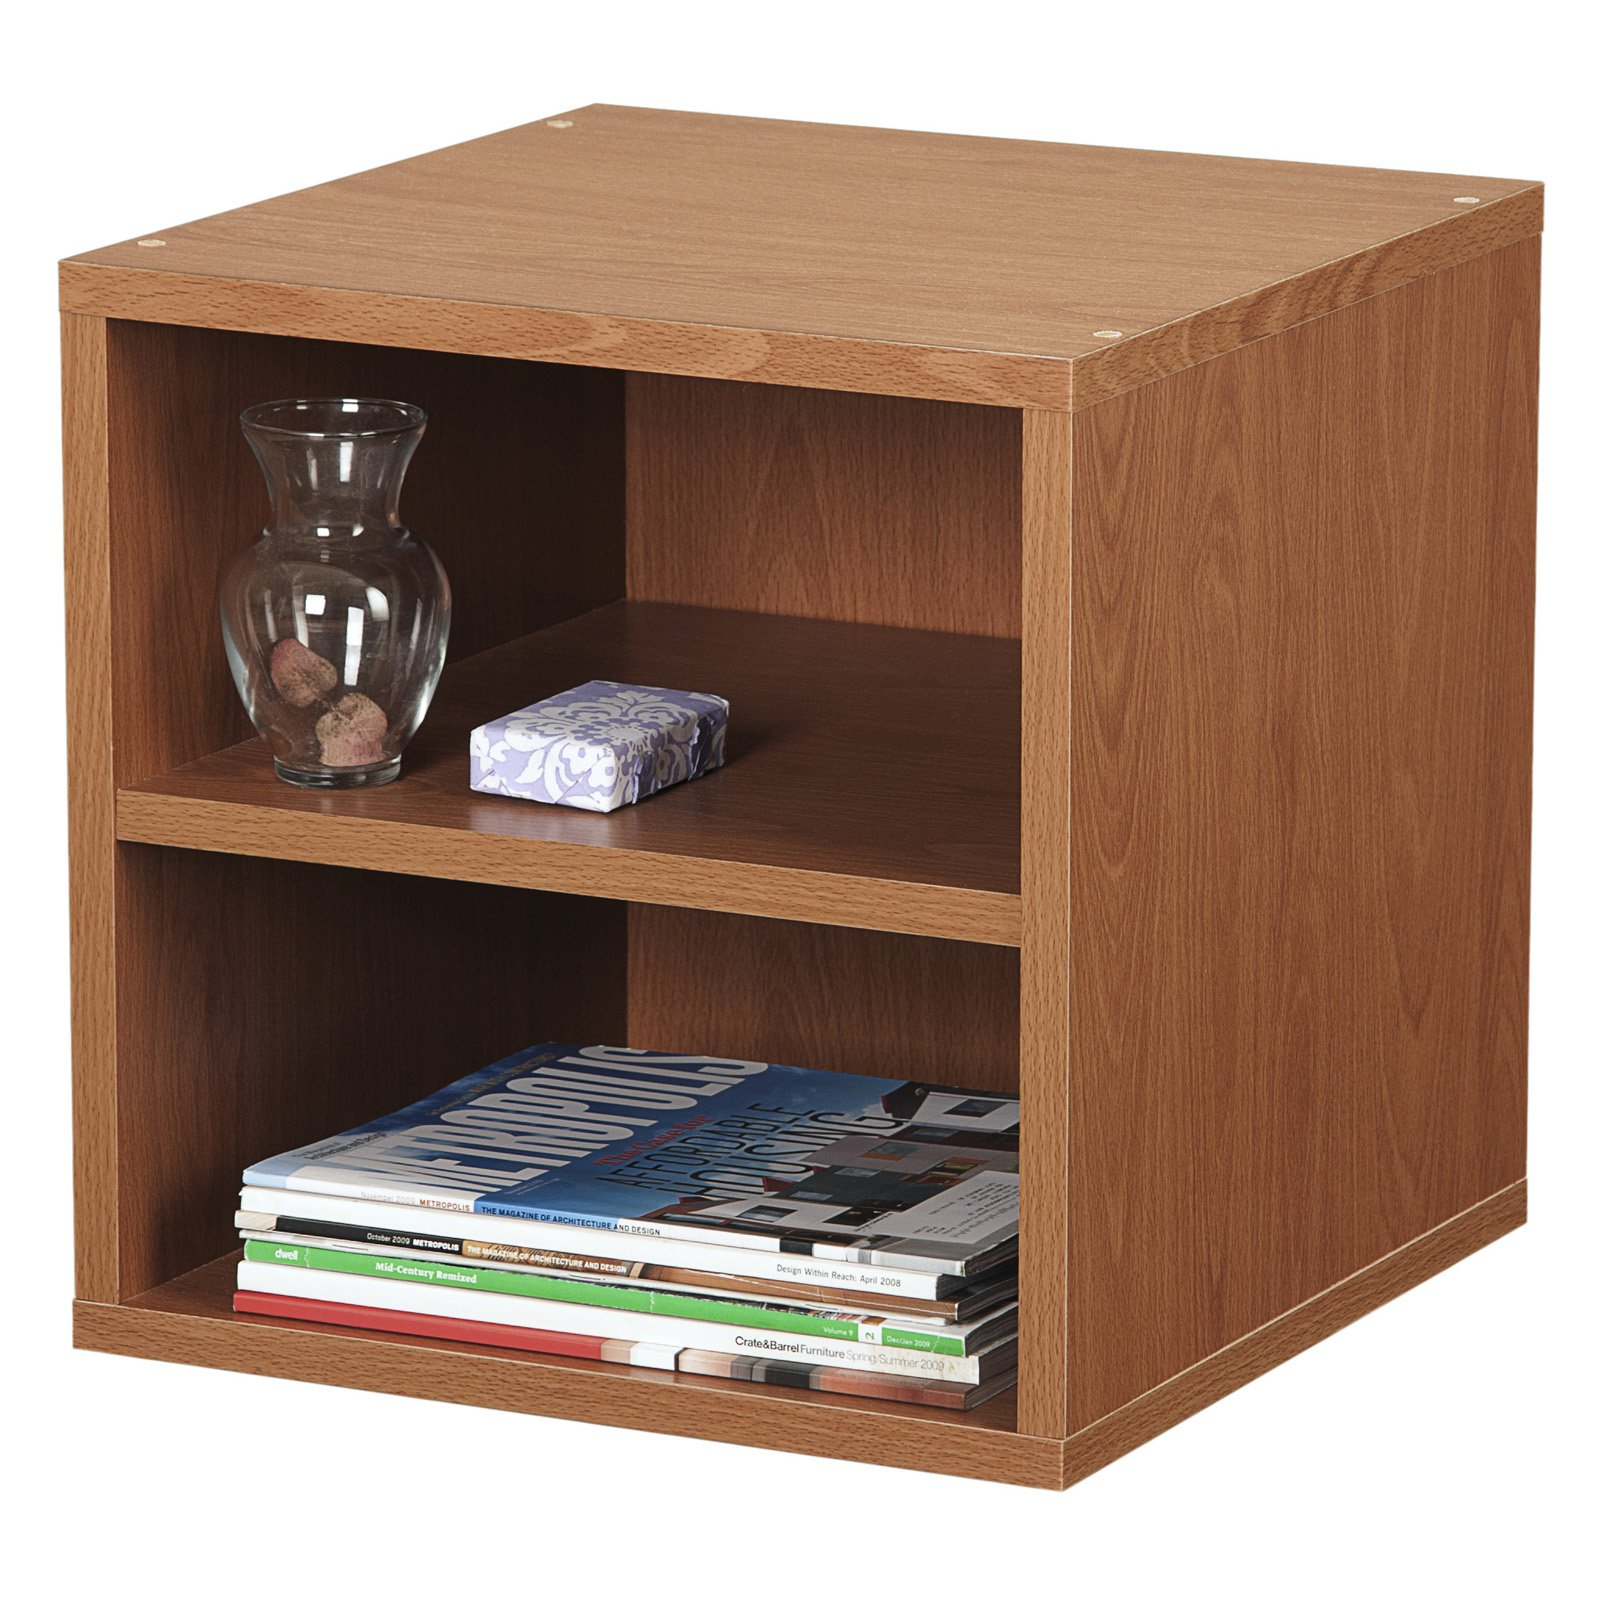 cube book boxes expedit home wonderful furniture spaces storage ideas for white shelves cubes garage small modular bookcase target shelf ikea unit cabinets alluring